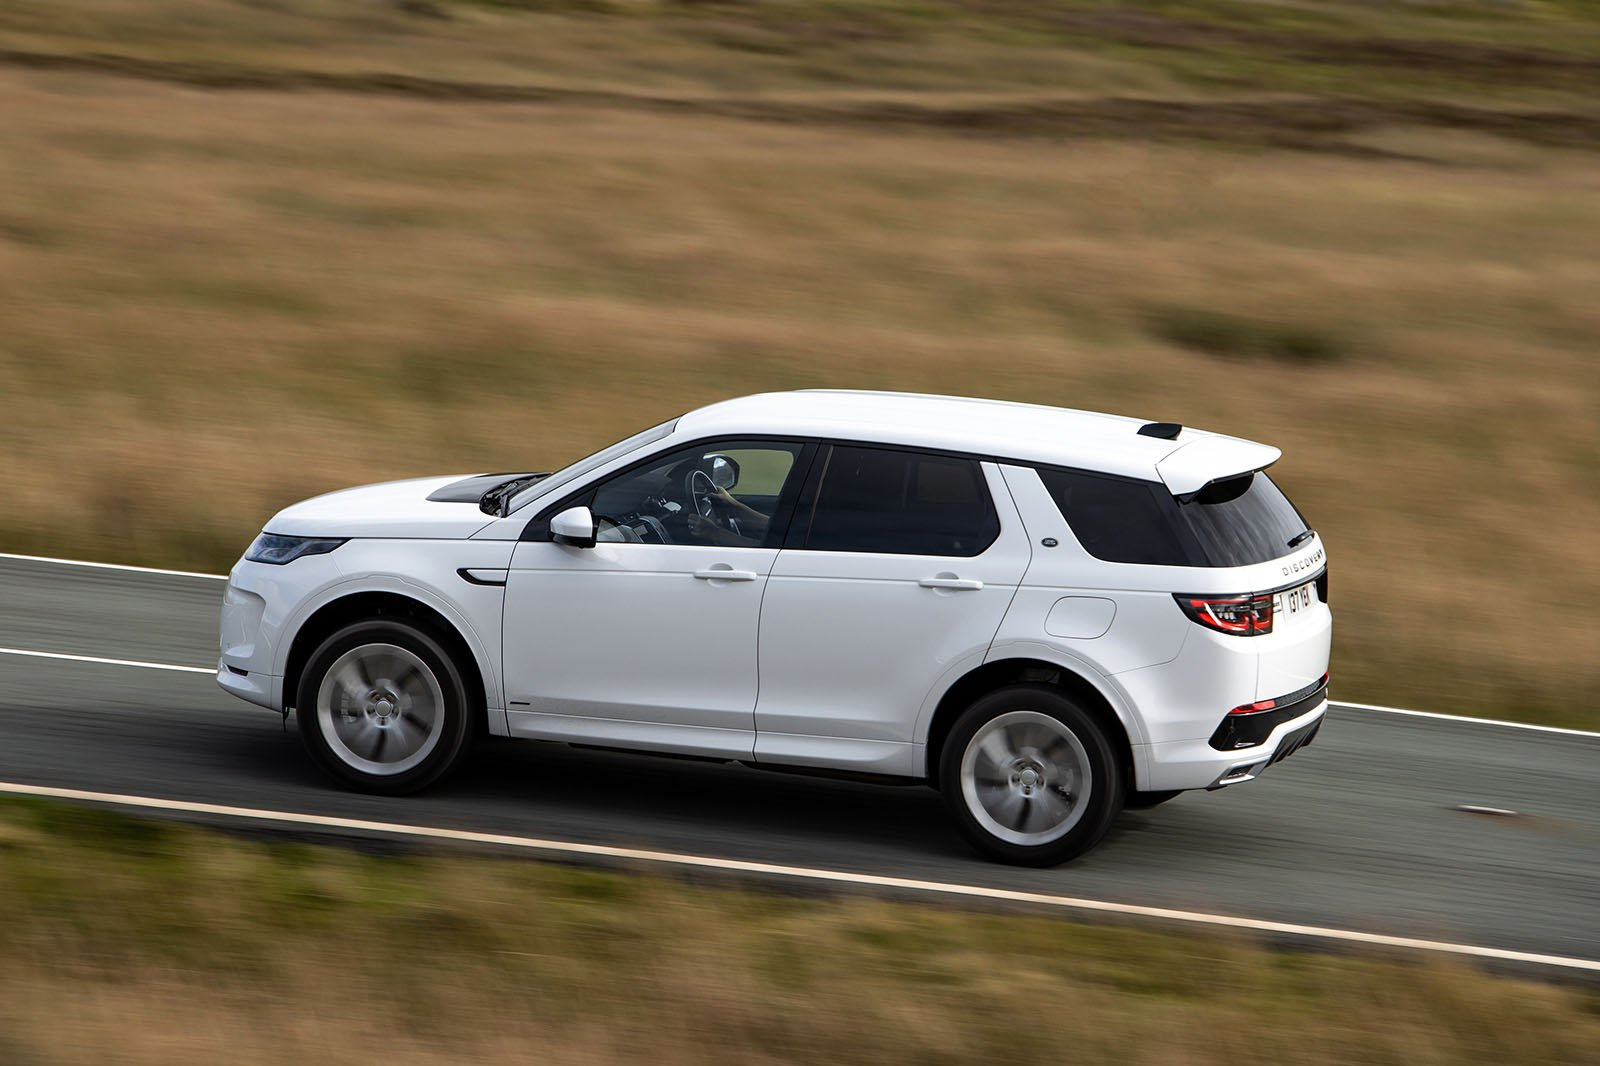 Land Rover Discovery Sport 2020 left panning